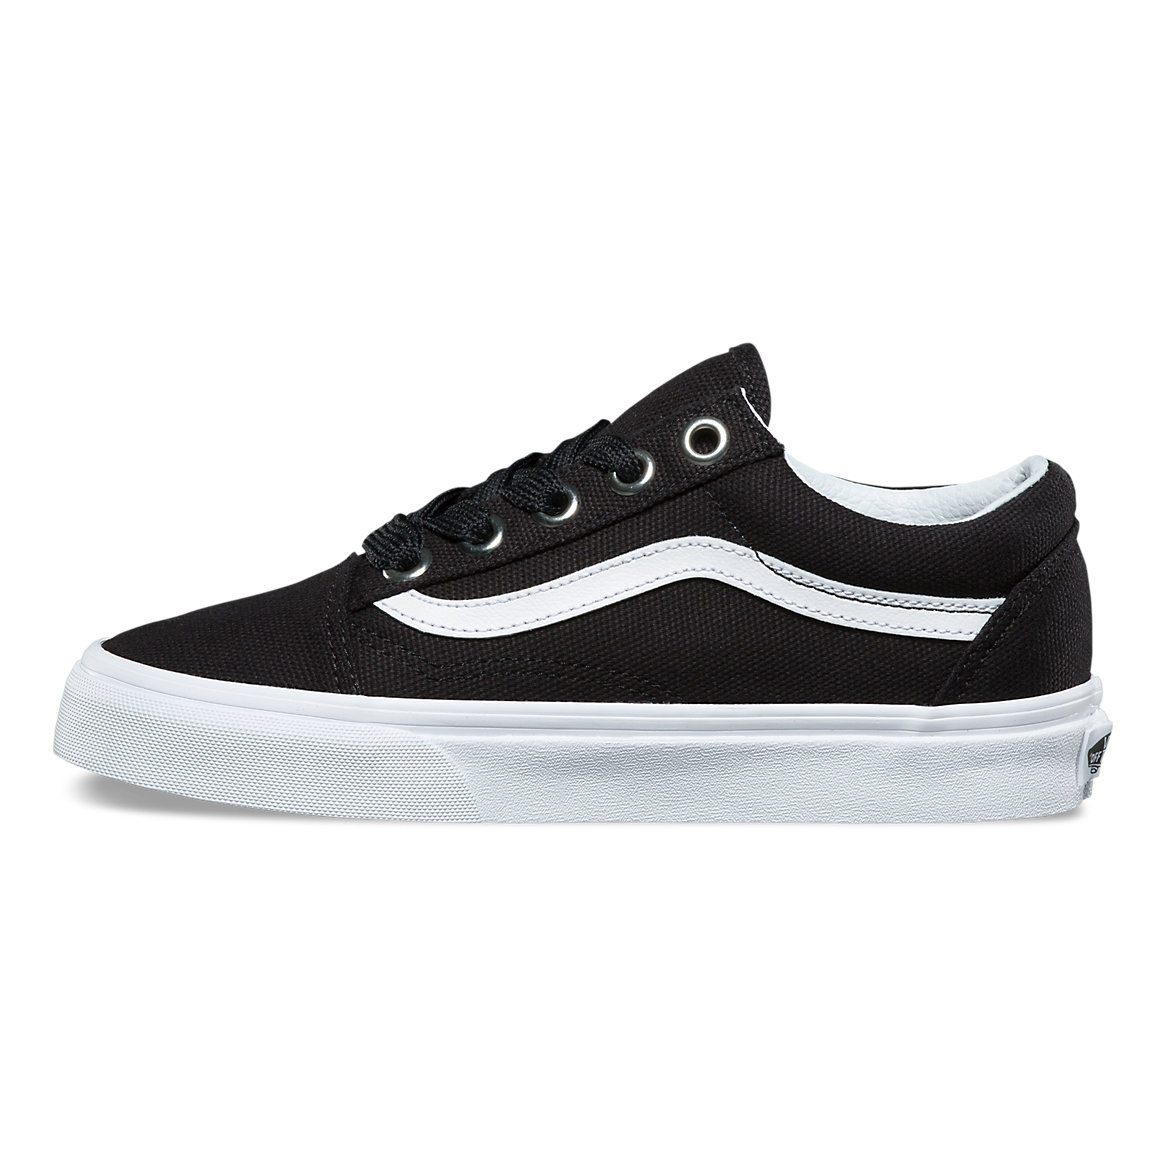 431f50aeb4bf Vans Oversized Lace Old Skool Women s Shoe - Black True White ...